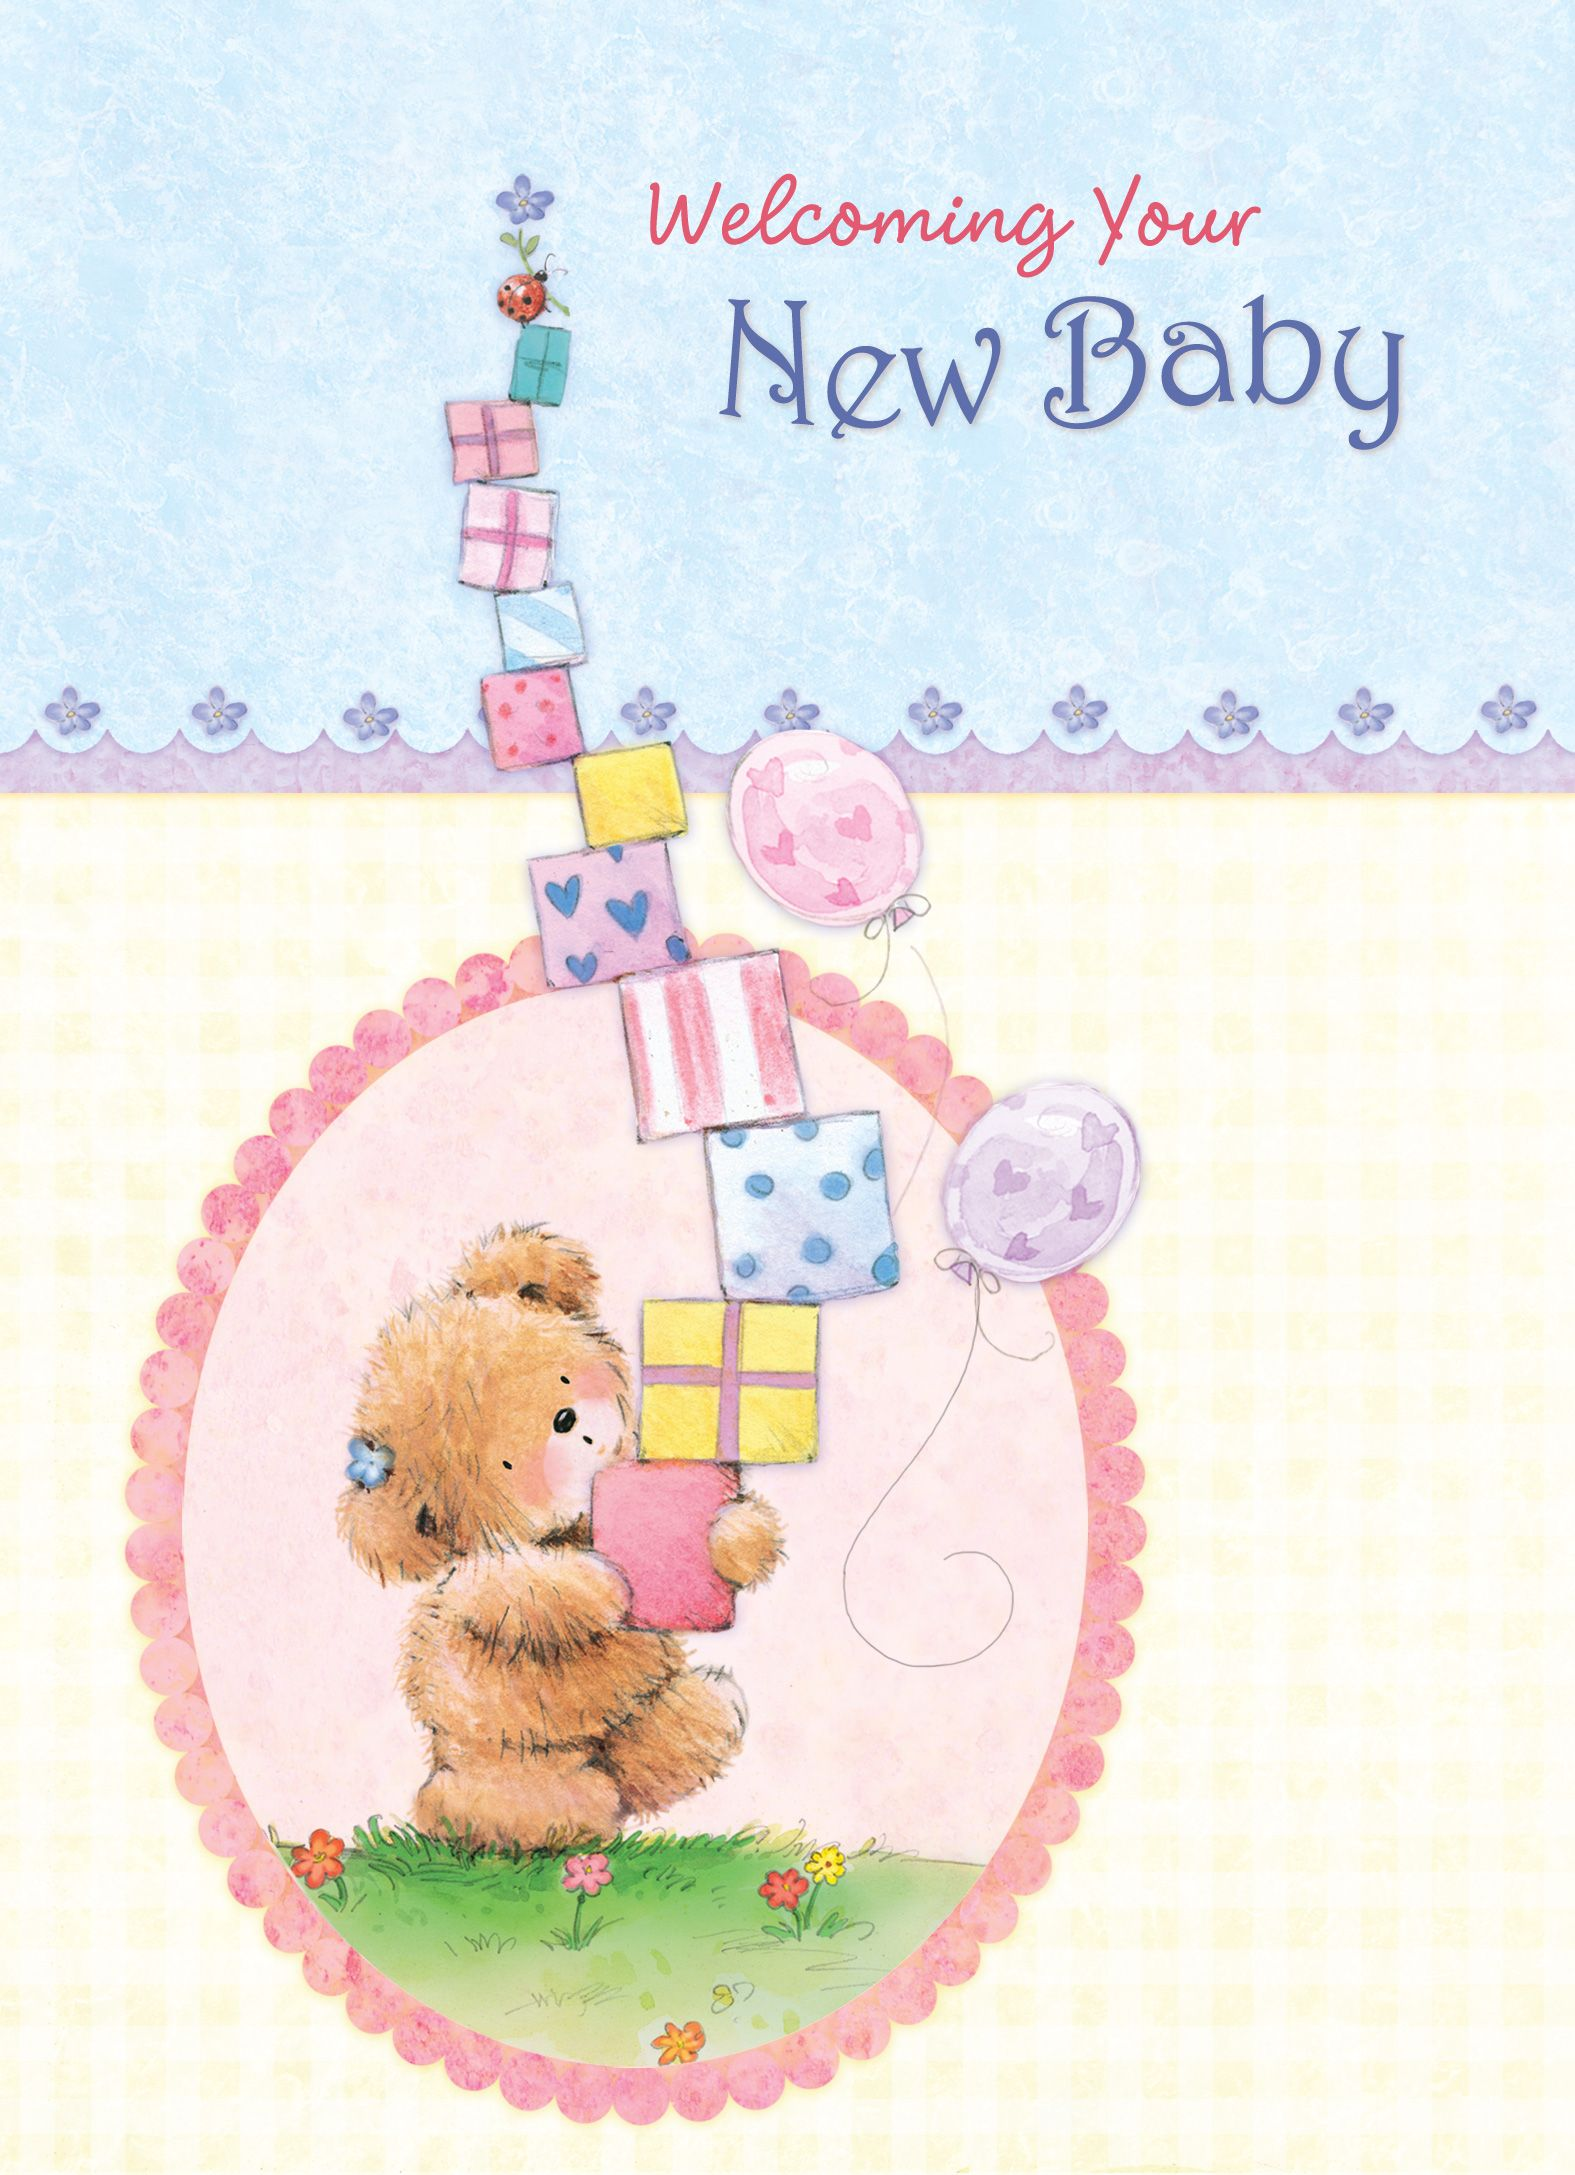 New baby baby greetings gifts pinterest babies new baby kristyandbryce Gallery